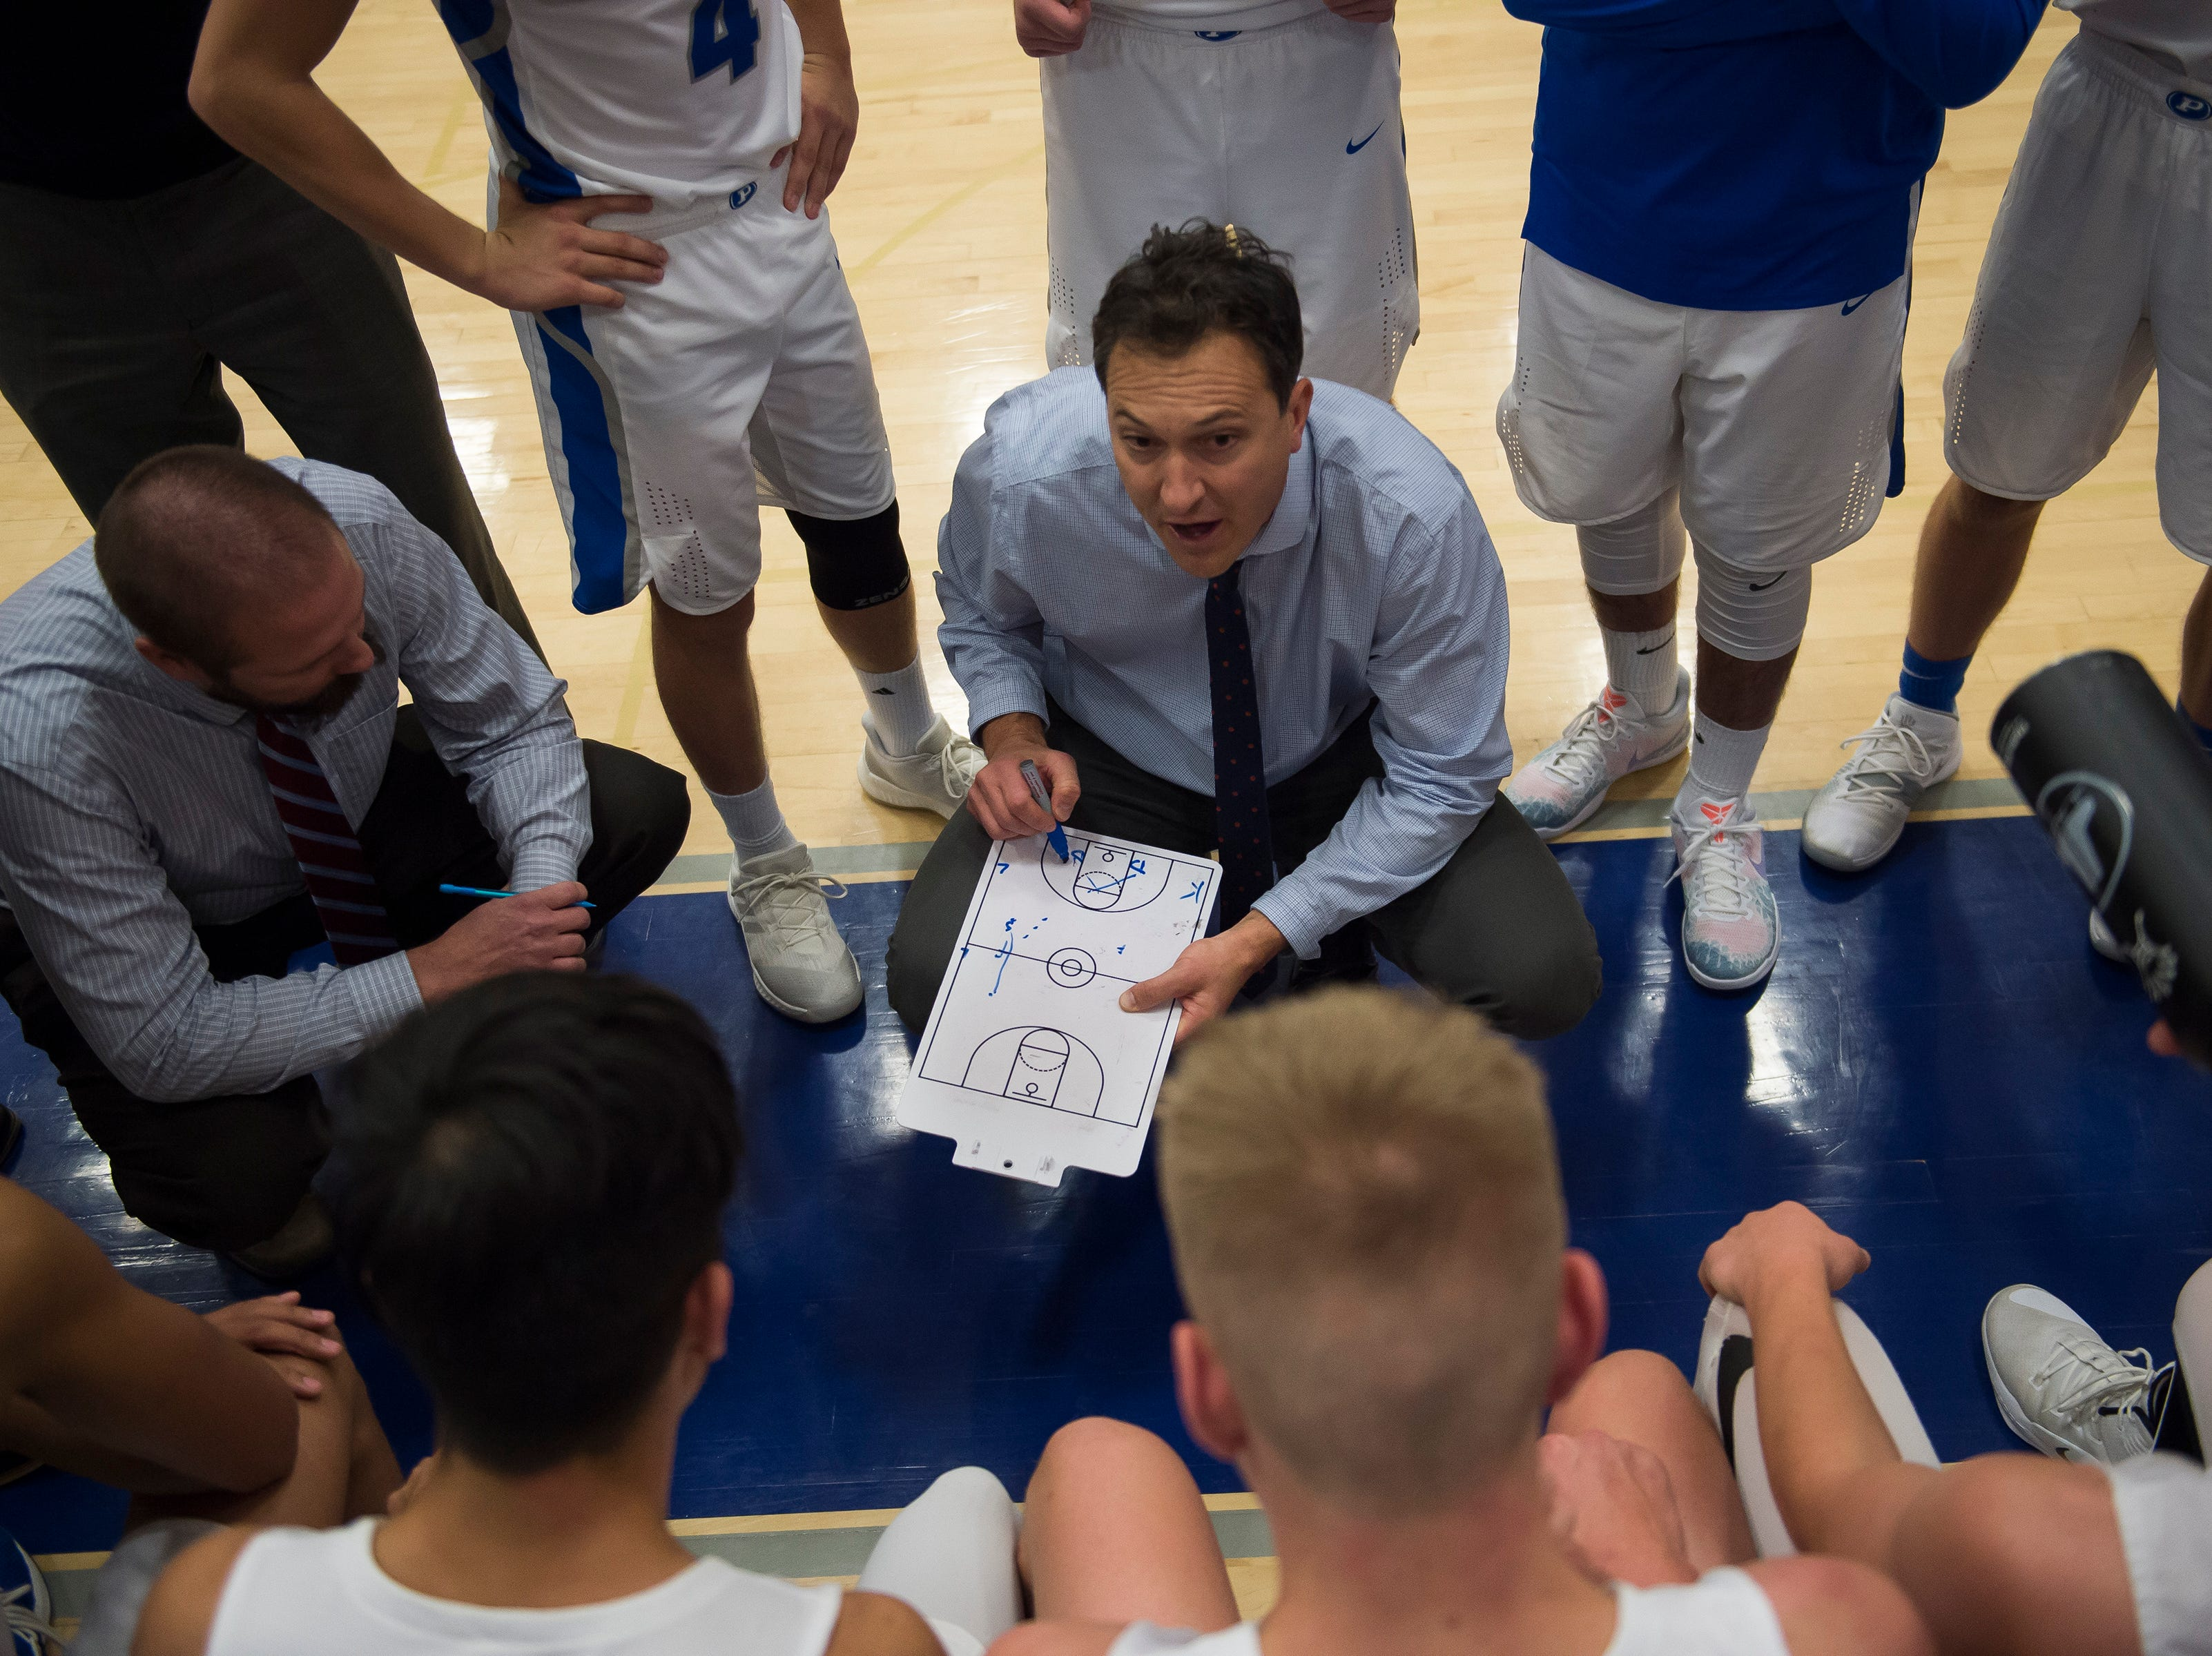 Poudre High School head coach Jacob Stein strategizes with his team during a game against Fossil Ridge High School on Tuesday, Dec. 4, 2018, at Poudre High School on Fort Collins, Colo.